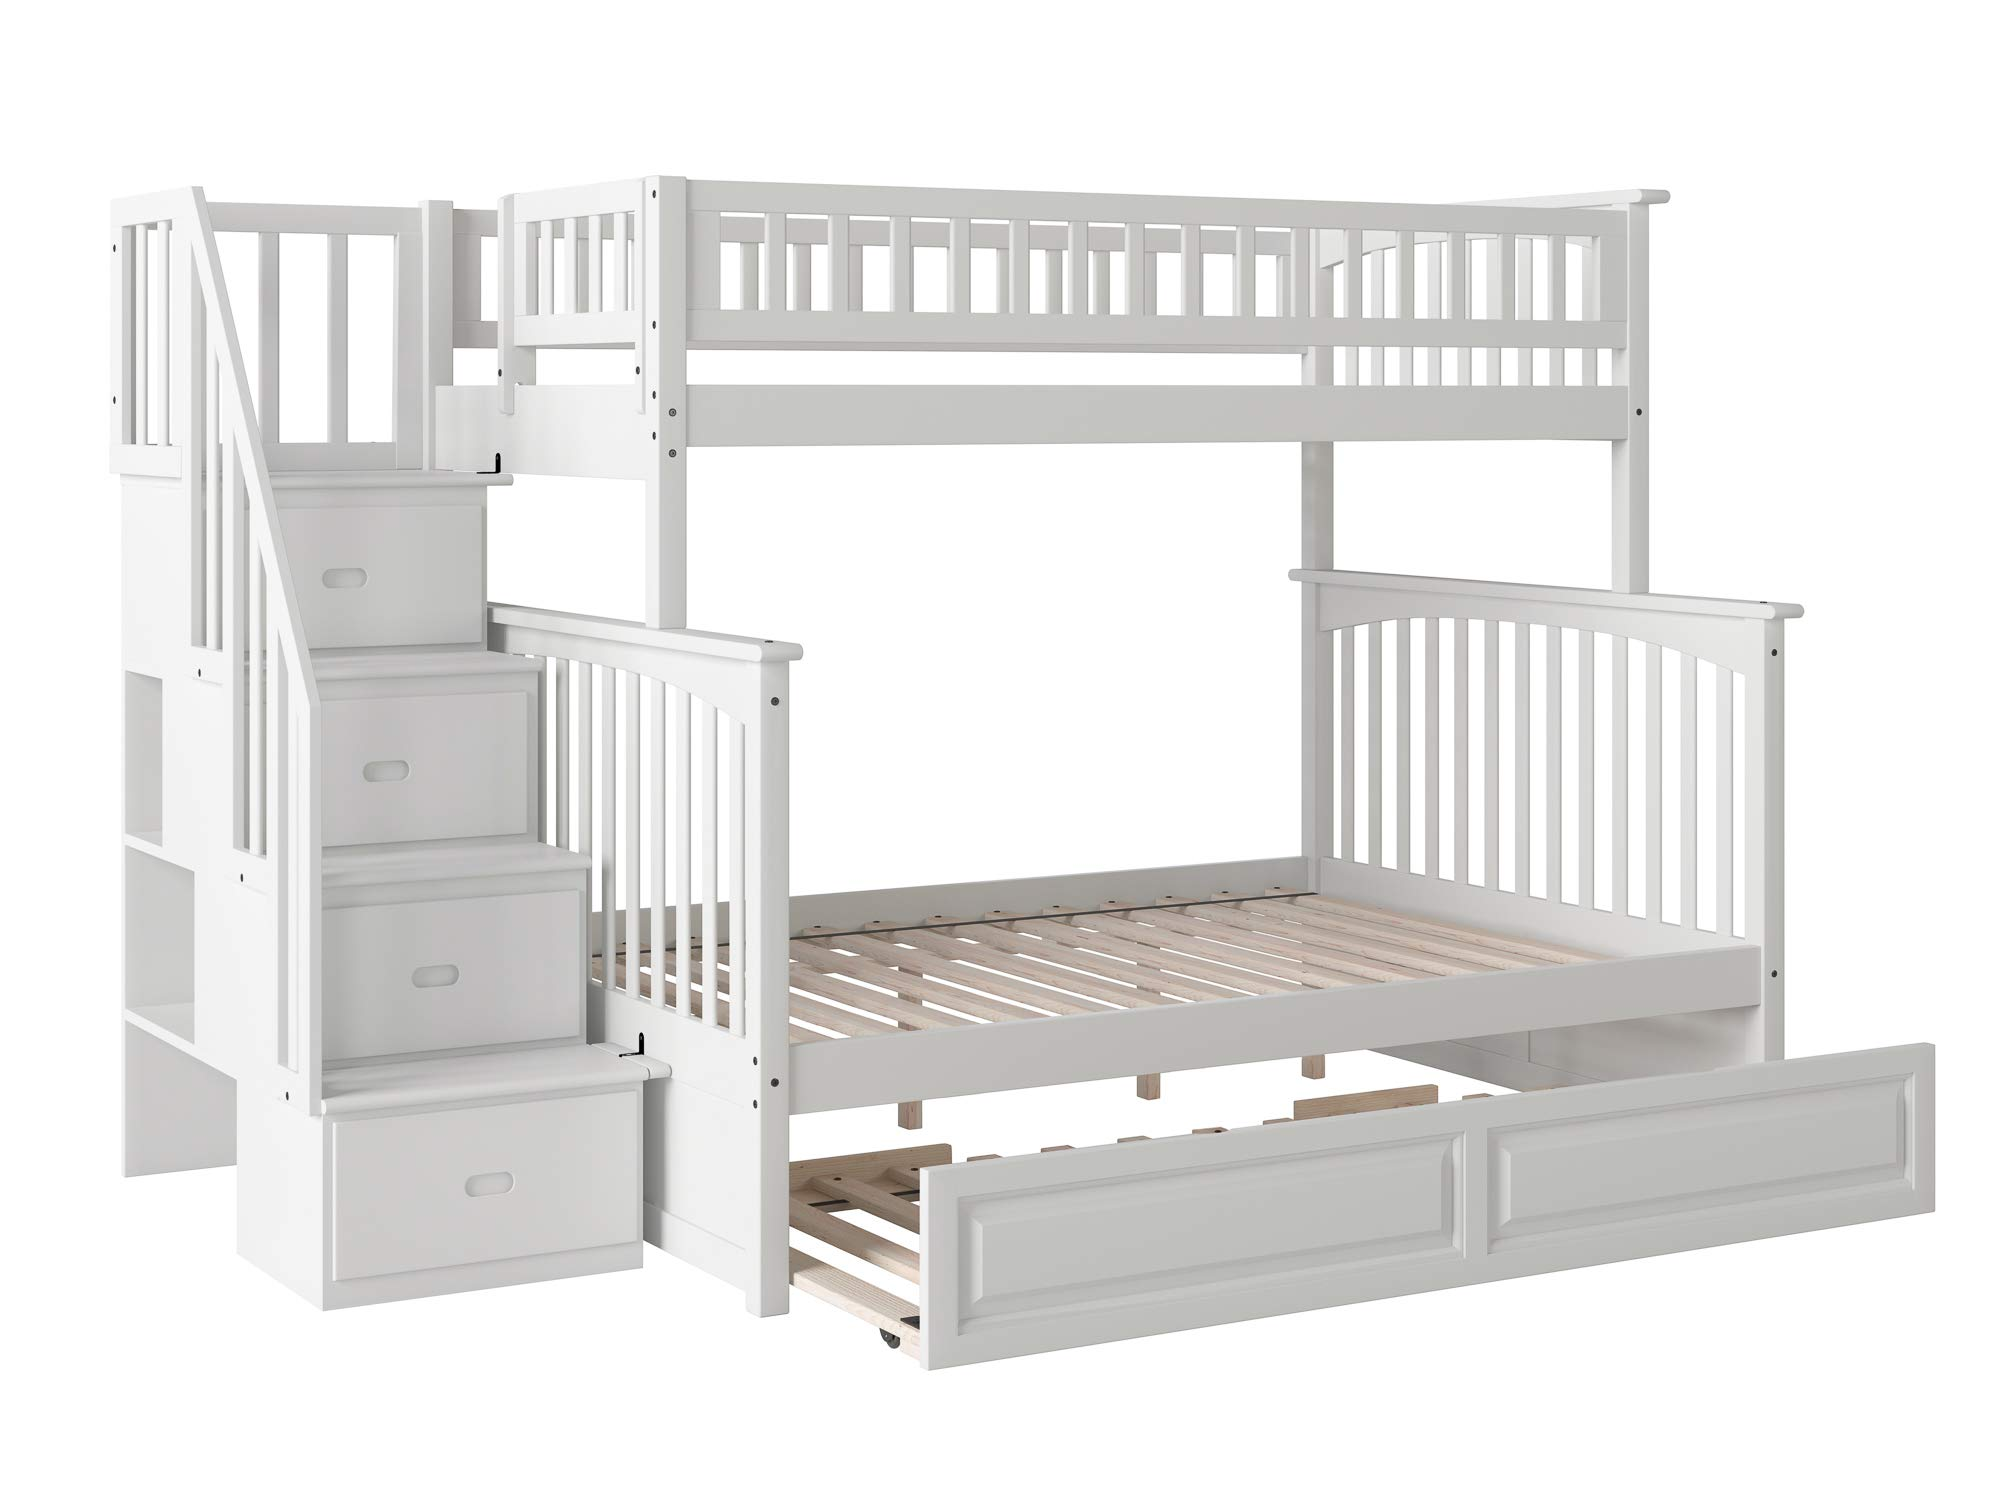 Atlantic Furniture Columbia Staircase Bunk Bed with Raised Panel Trundle Bed, Twin/Full, White by Atlantic Furniture